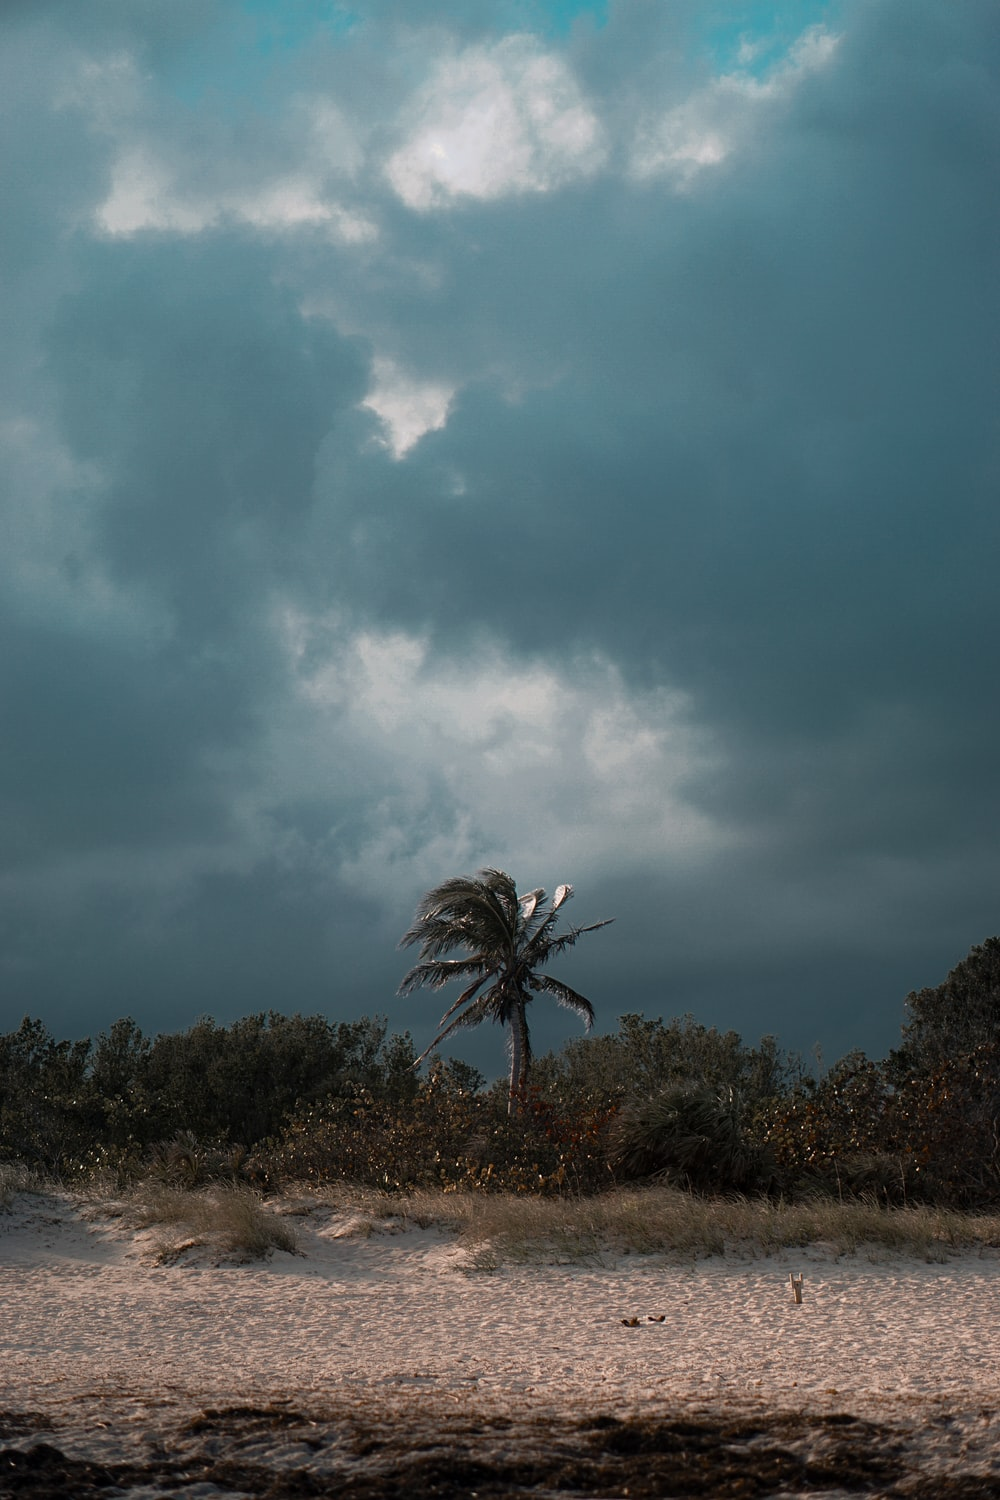 green coconut palm over other trees under gray clouds